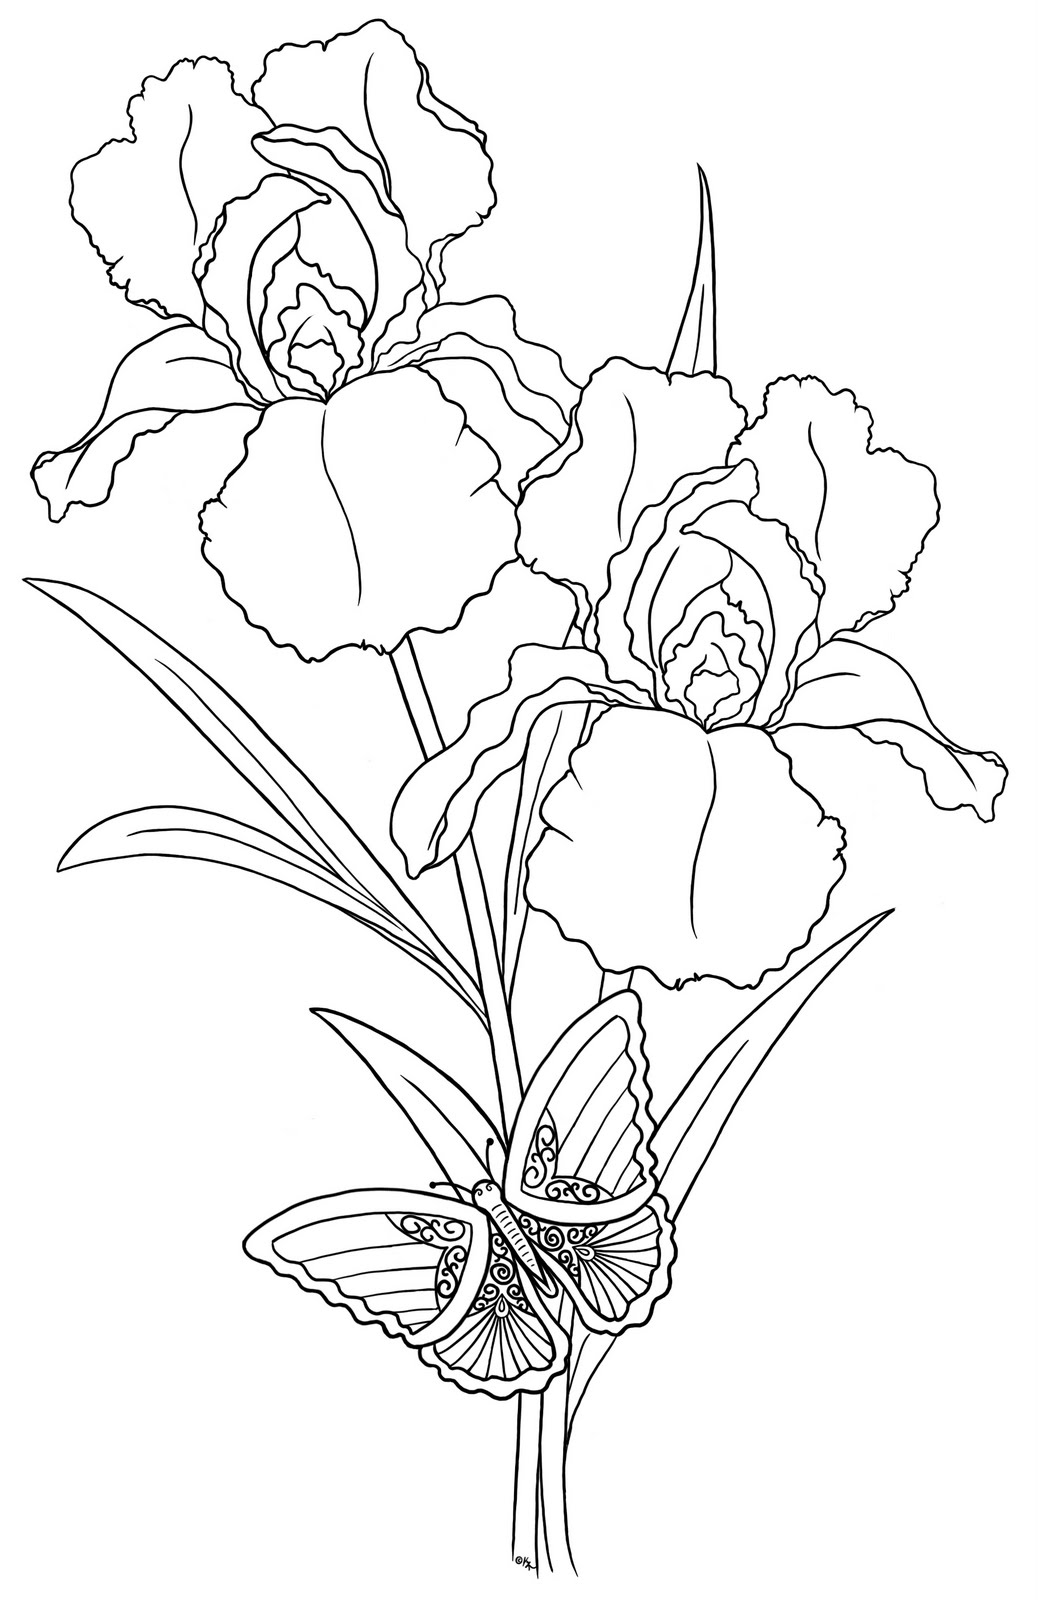 Line Drawing Of Iris Flower : Iris outline drawing gallery